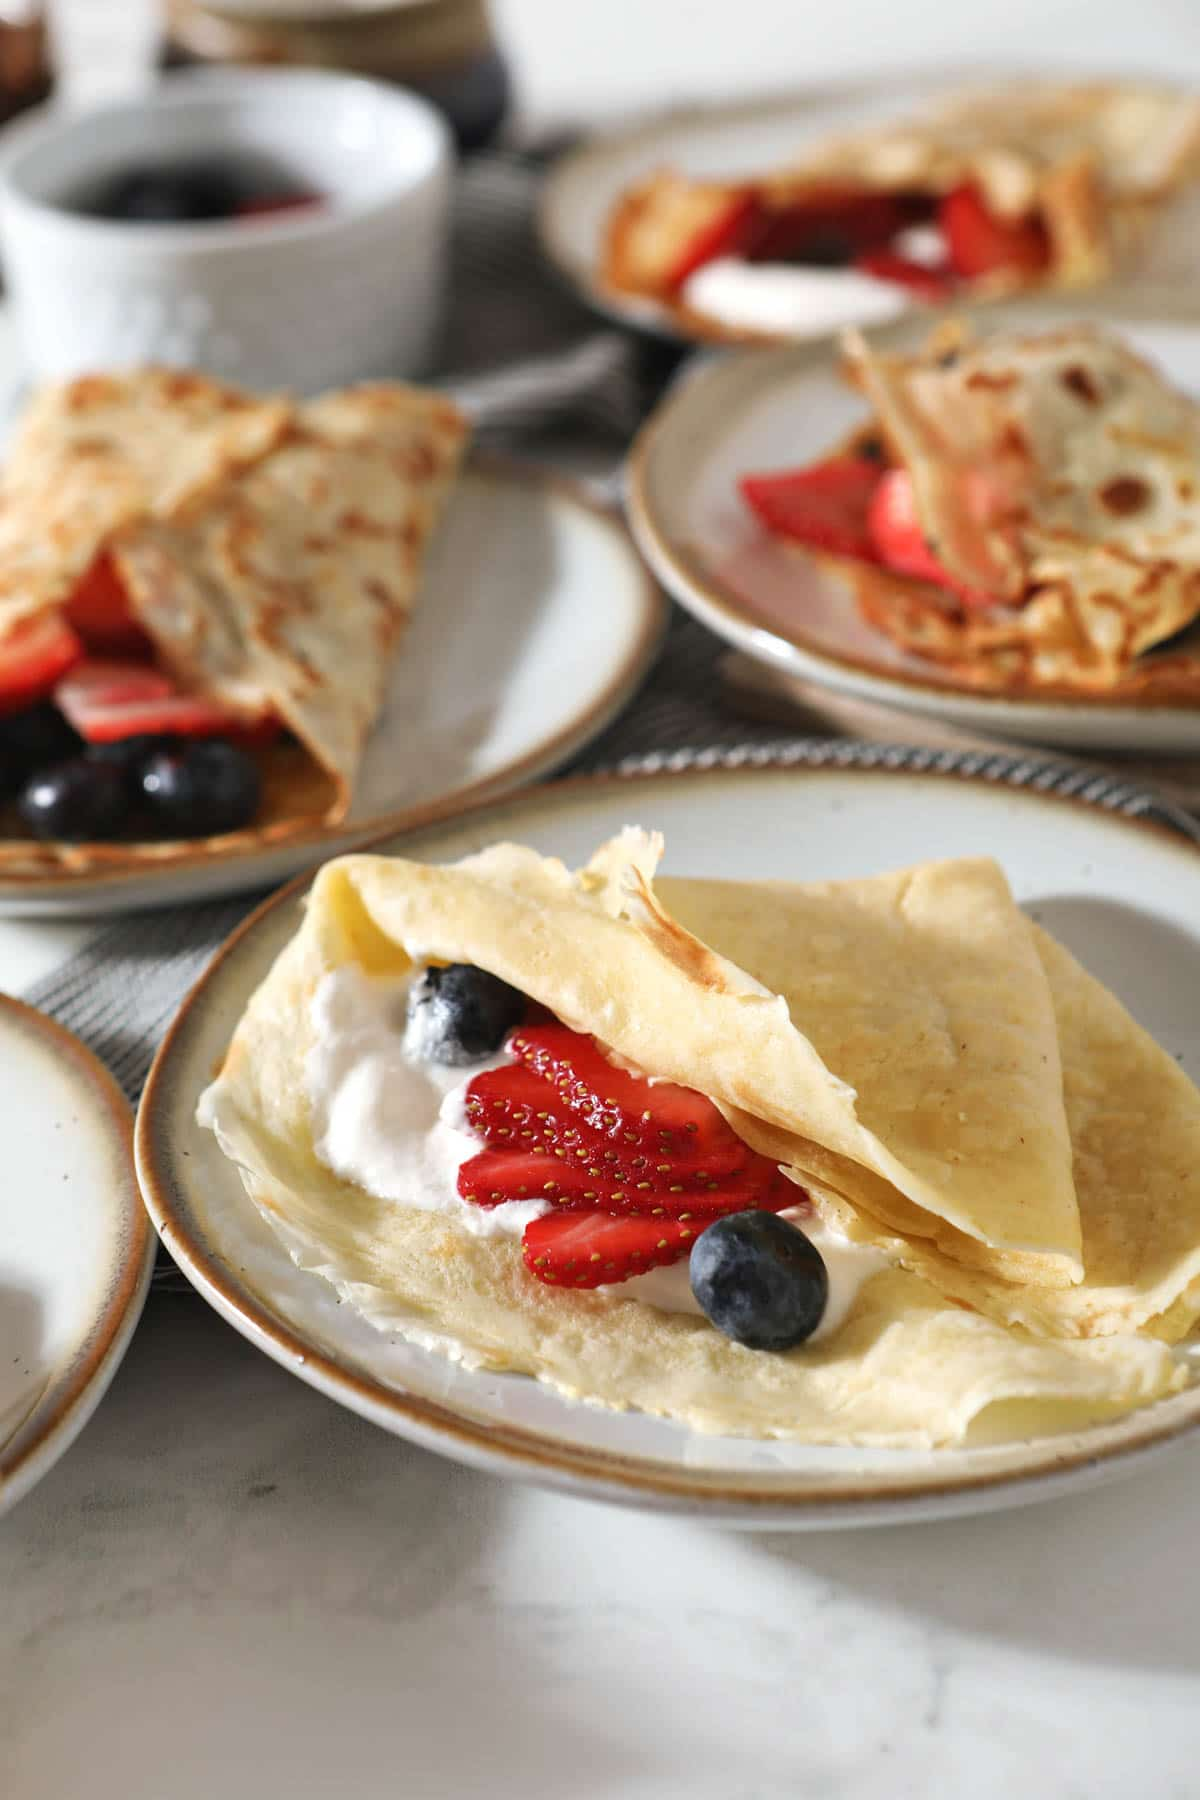 multiple plates with sourdough crepes, berries and cream